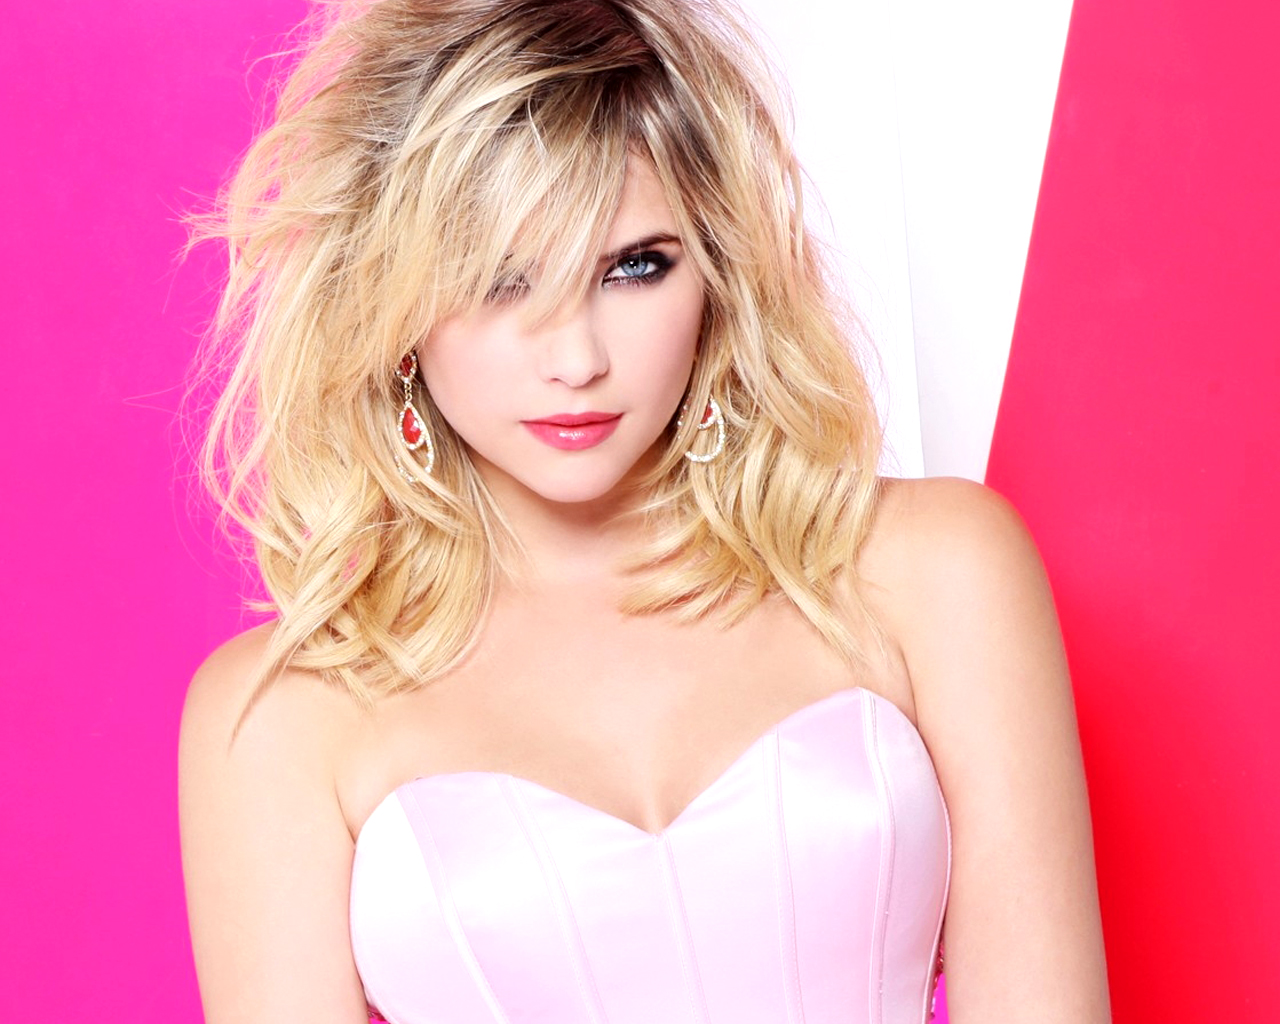 Ashley Benson Net Worth